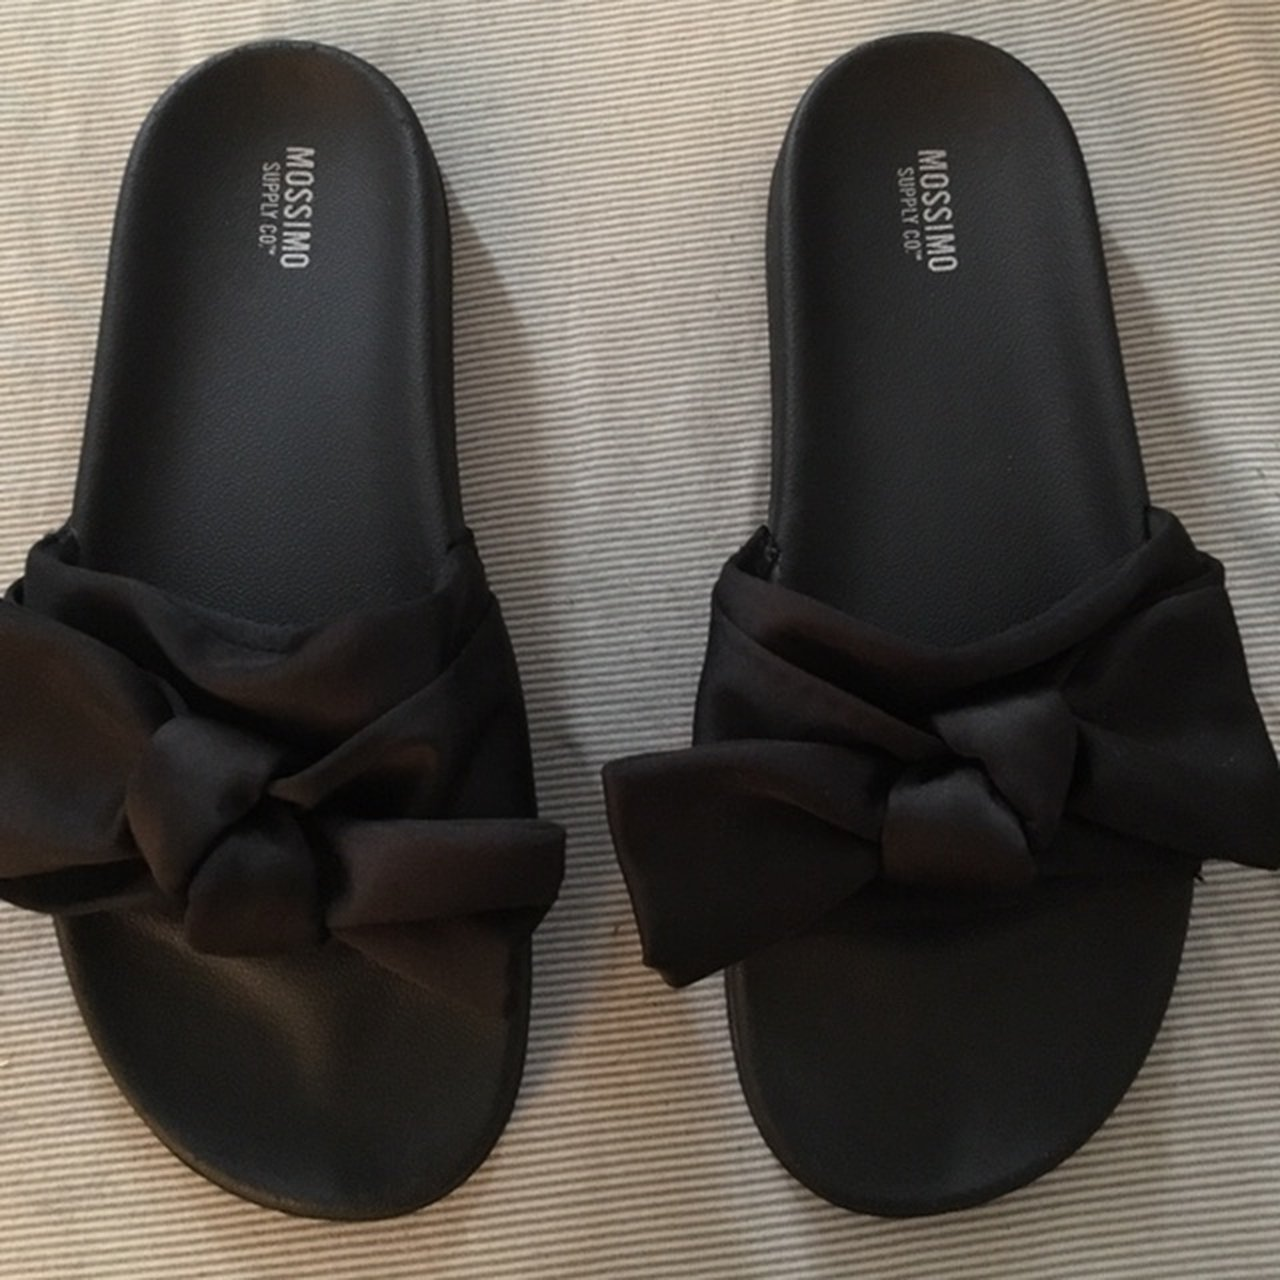 c7cdd98d0afb Mossimo black bow slides size 9 fit is a little snug due to - Depop